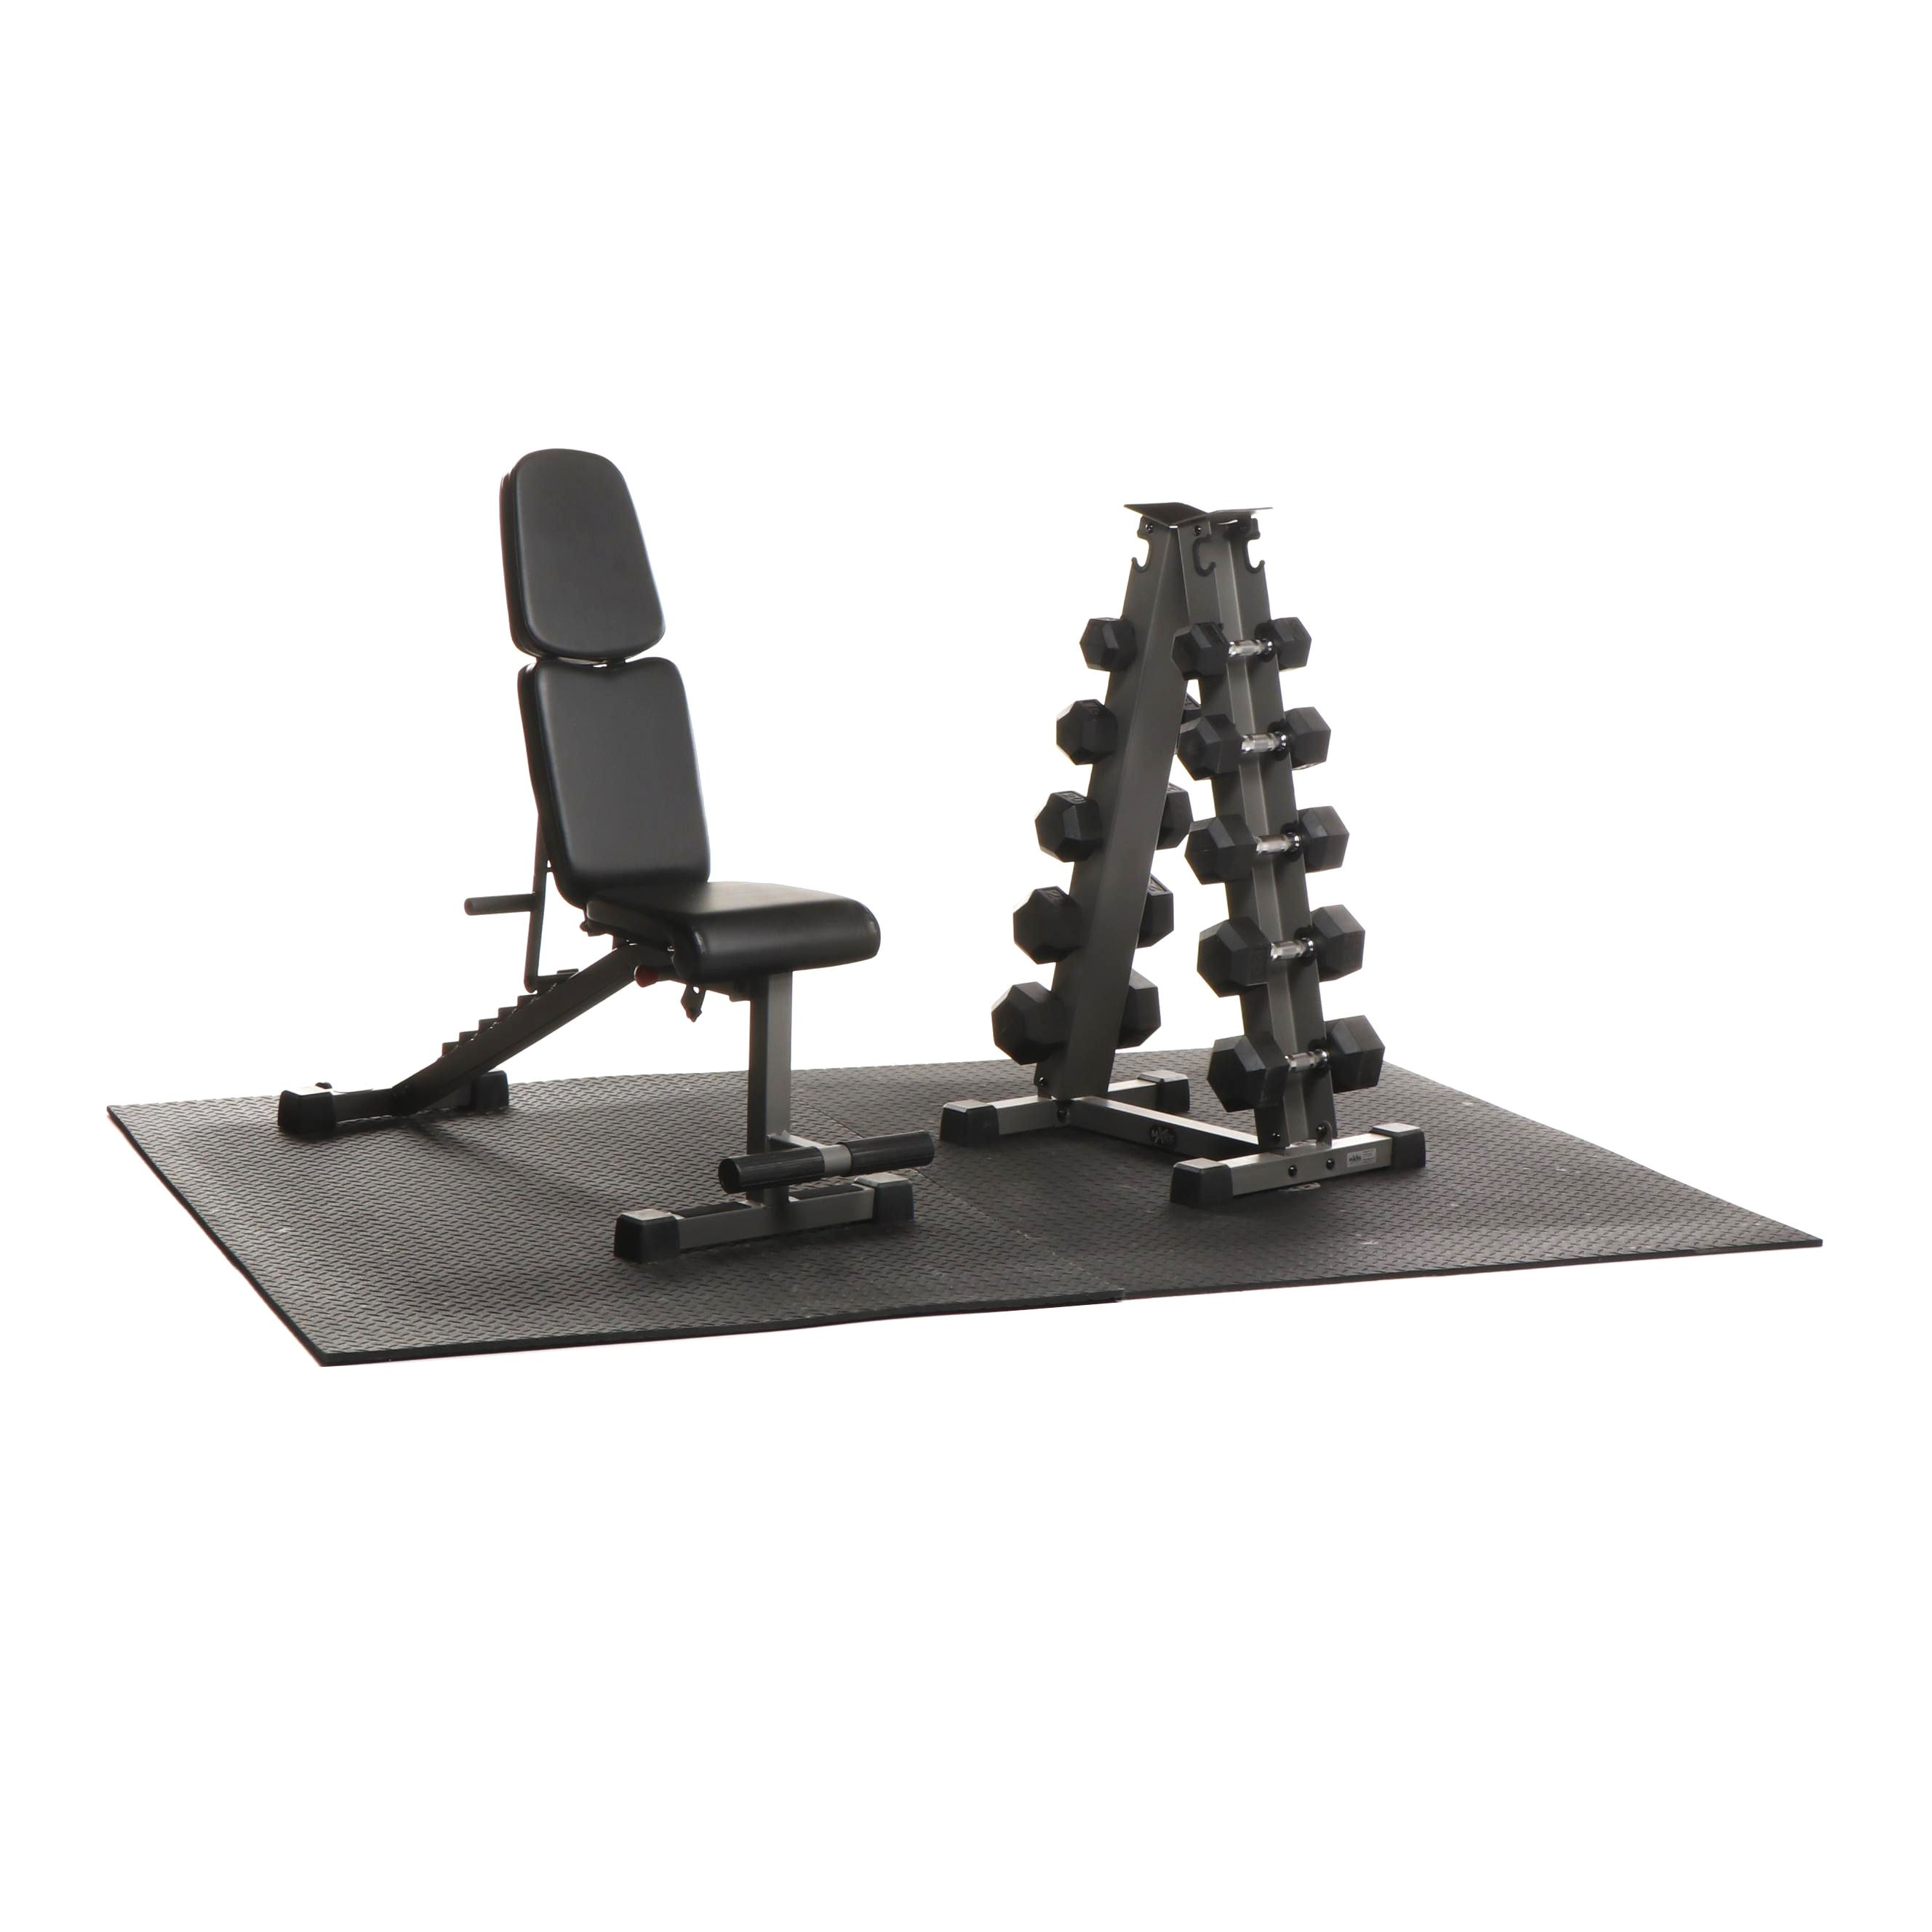 At Home Gym Equipment Featuring Xmark Bench, Weights, and Mat